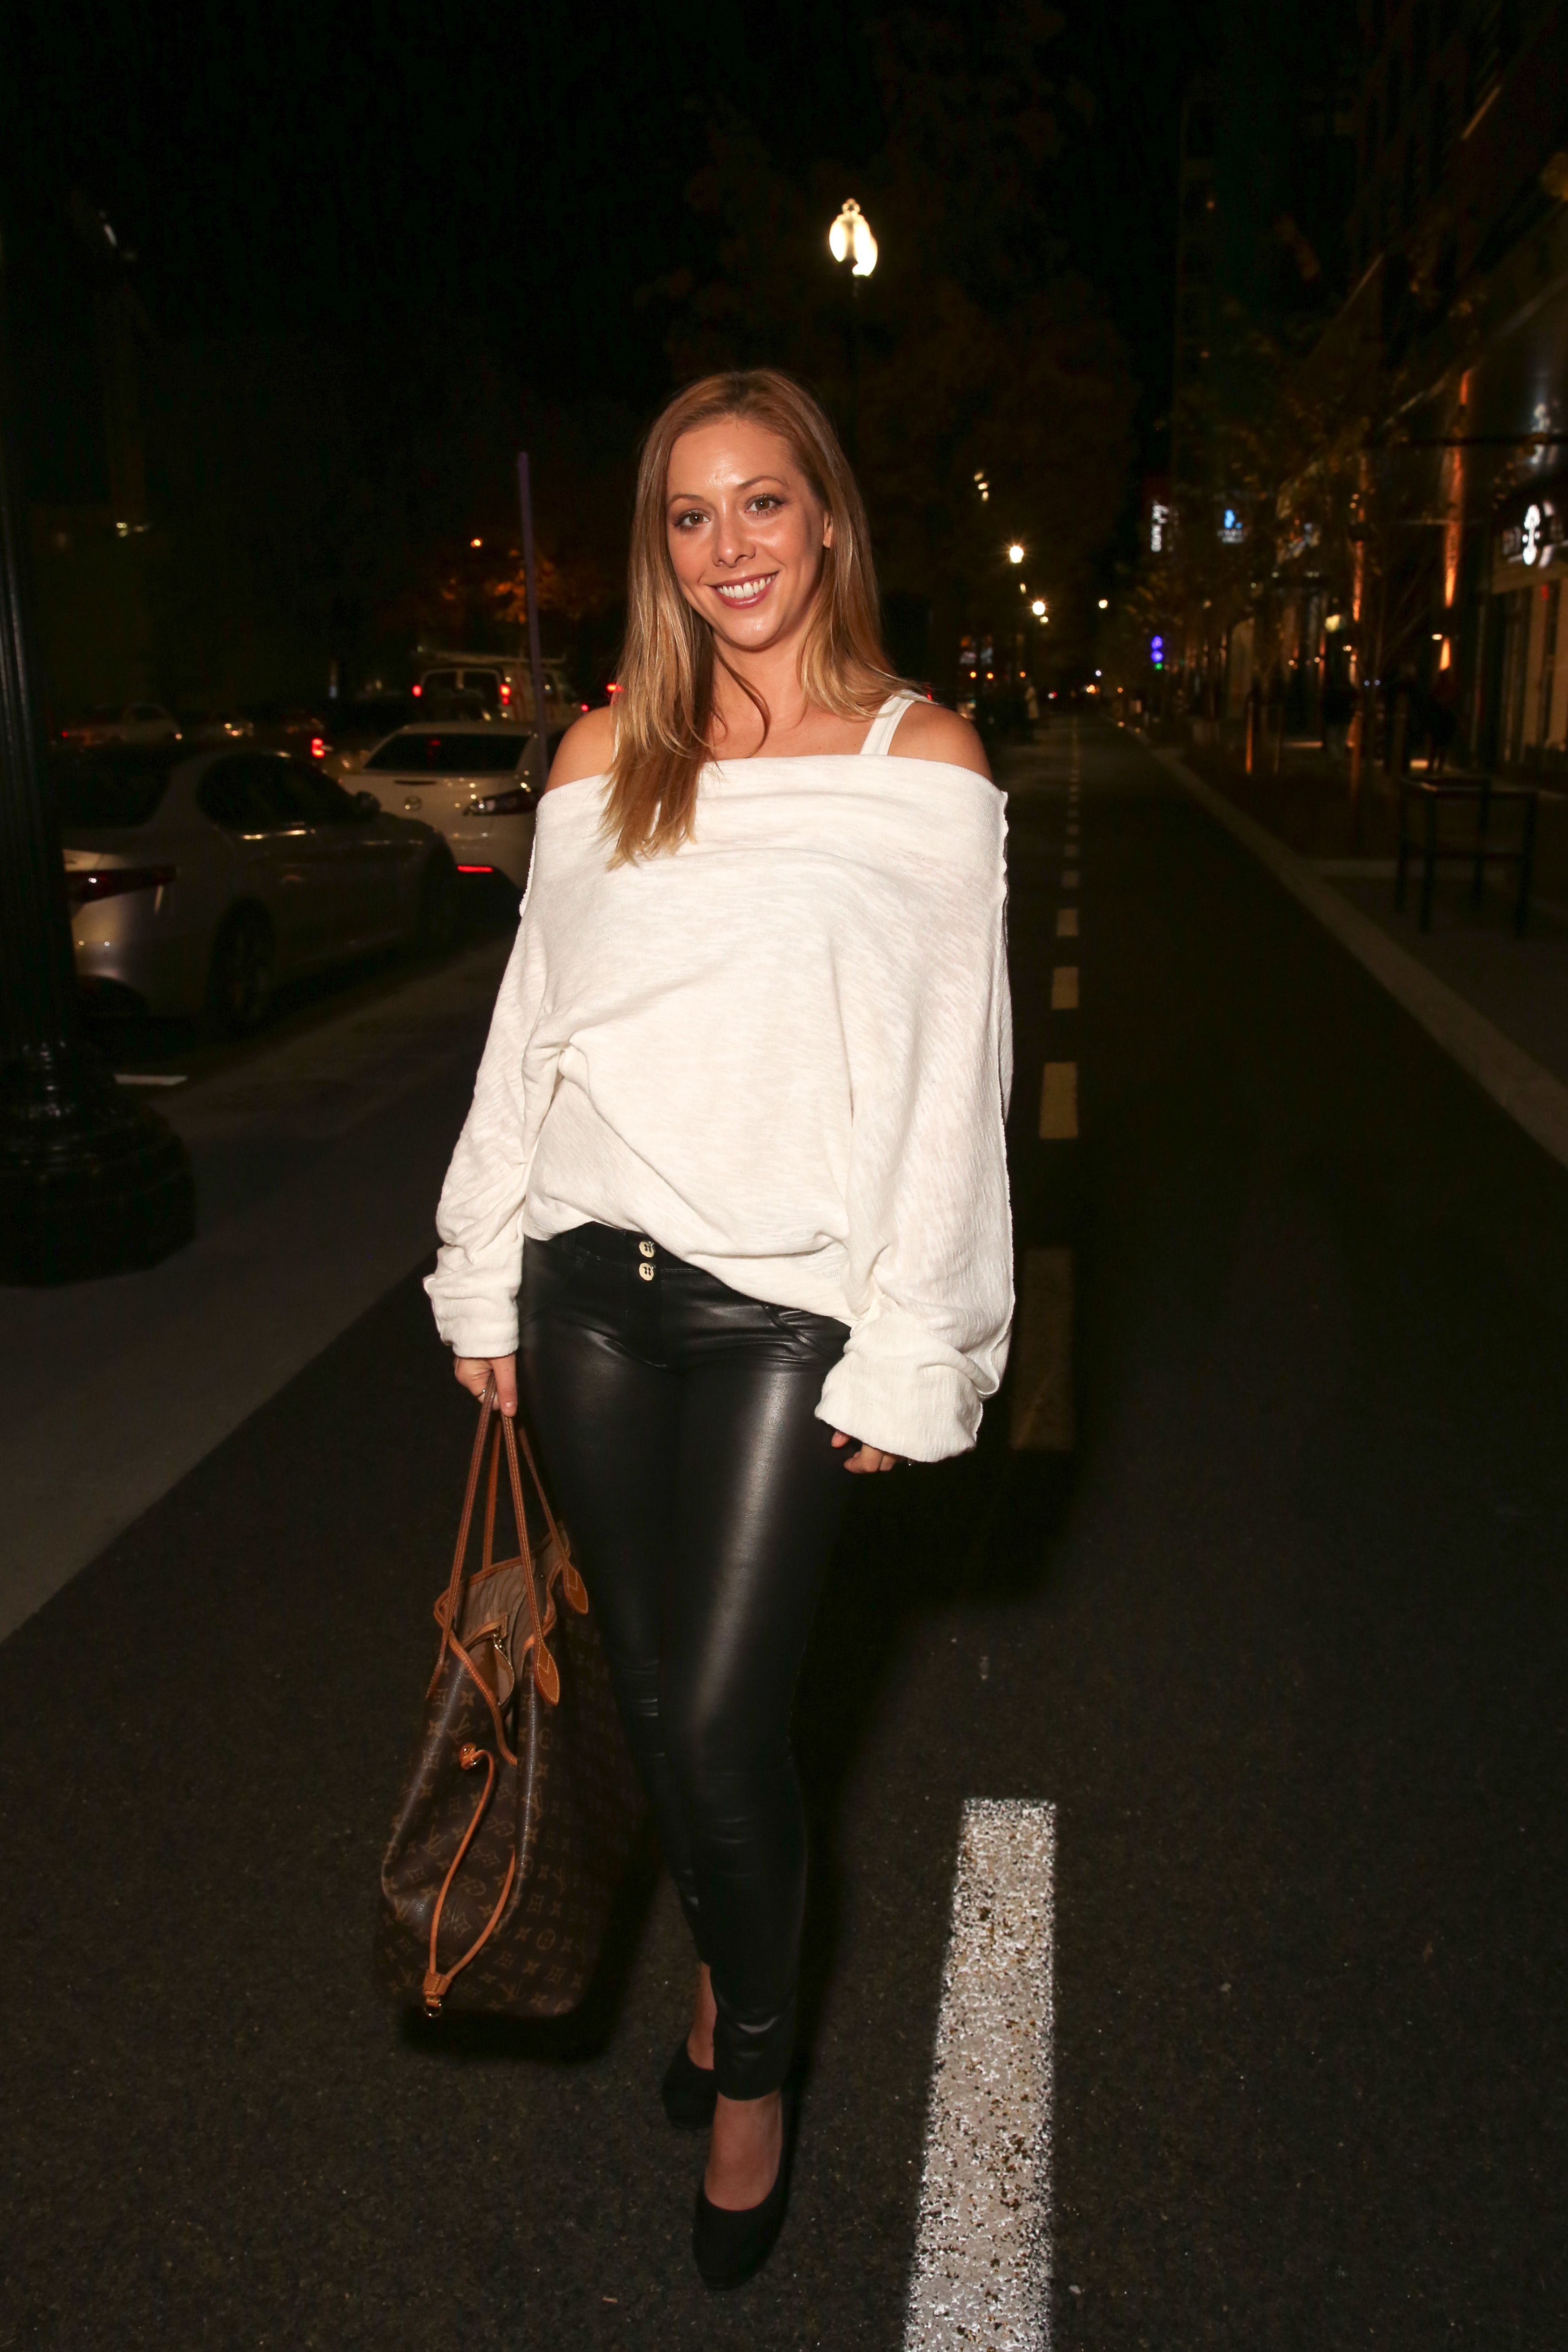 Heather Coward's leather leggings are fierce as heck.{&nbsp;}(Amanda Andrade-Rhoades/DC Refined)<p></p>